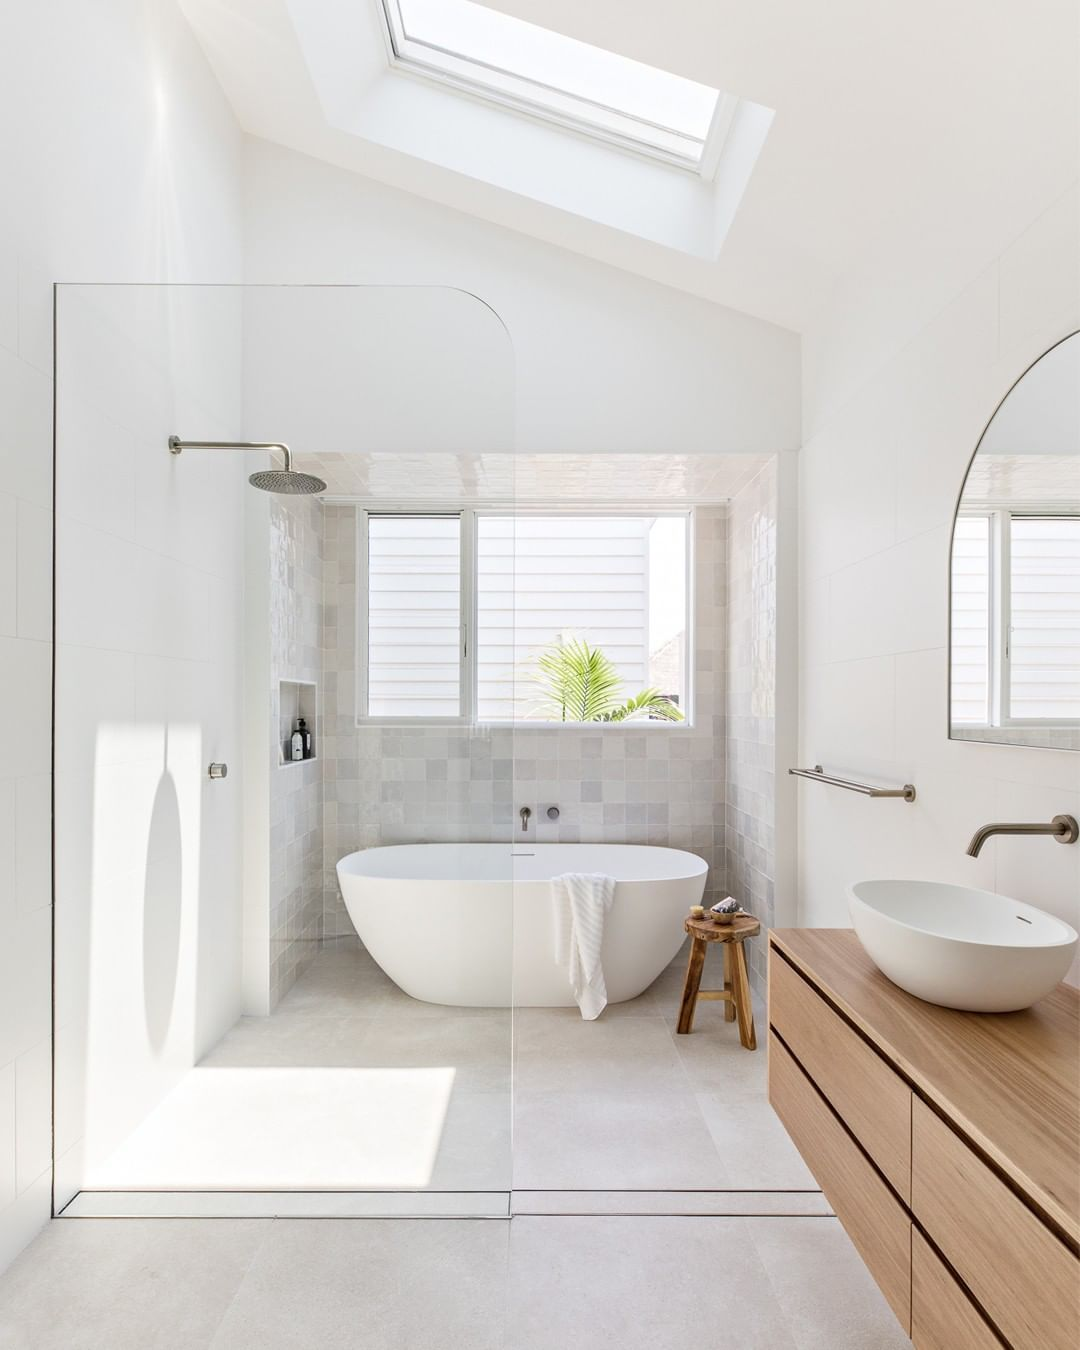 """ABI Bathrooms & Interiors on Instagram: """"We just adore a light-filled bathroom and this one by @orton.haus has us crushing hard ️  This light and airy bathroom has been…"""""""